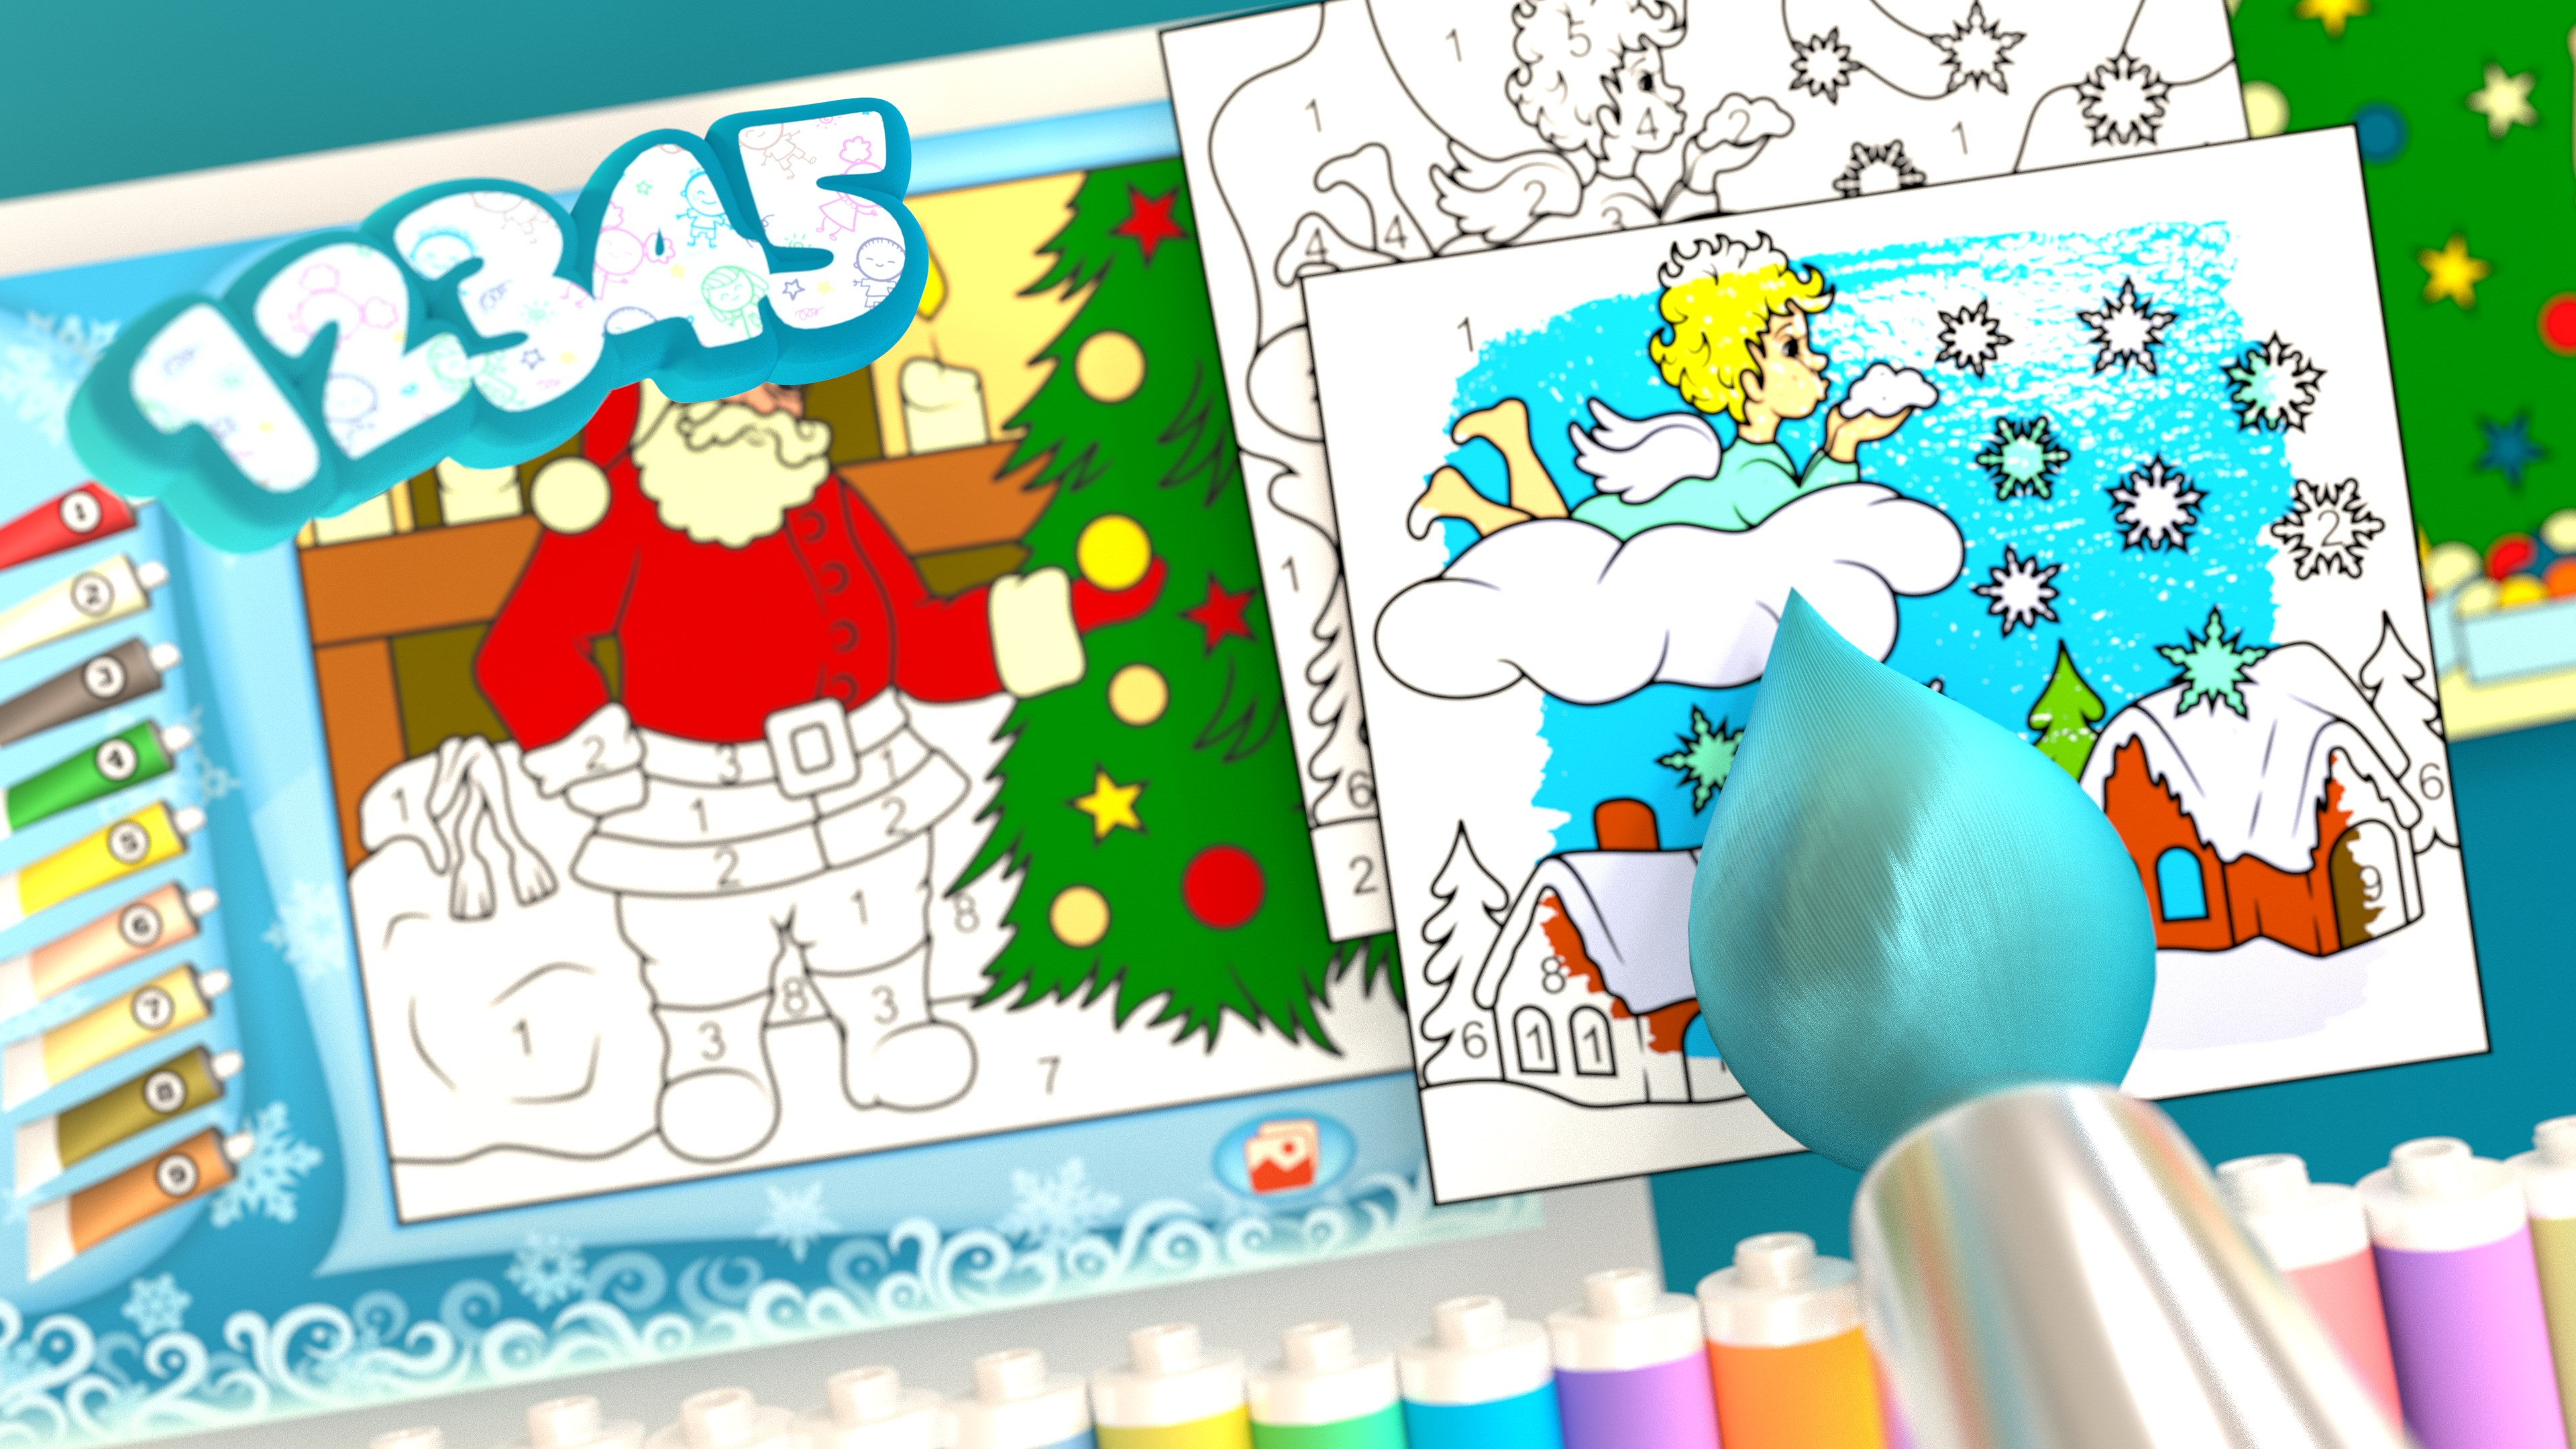 - Get Christmas Coloring Book For Kids - Microsoft Store